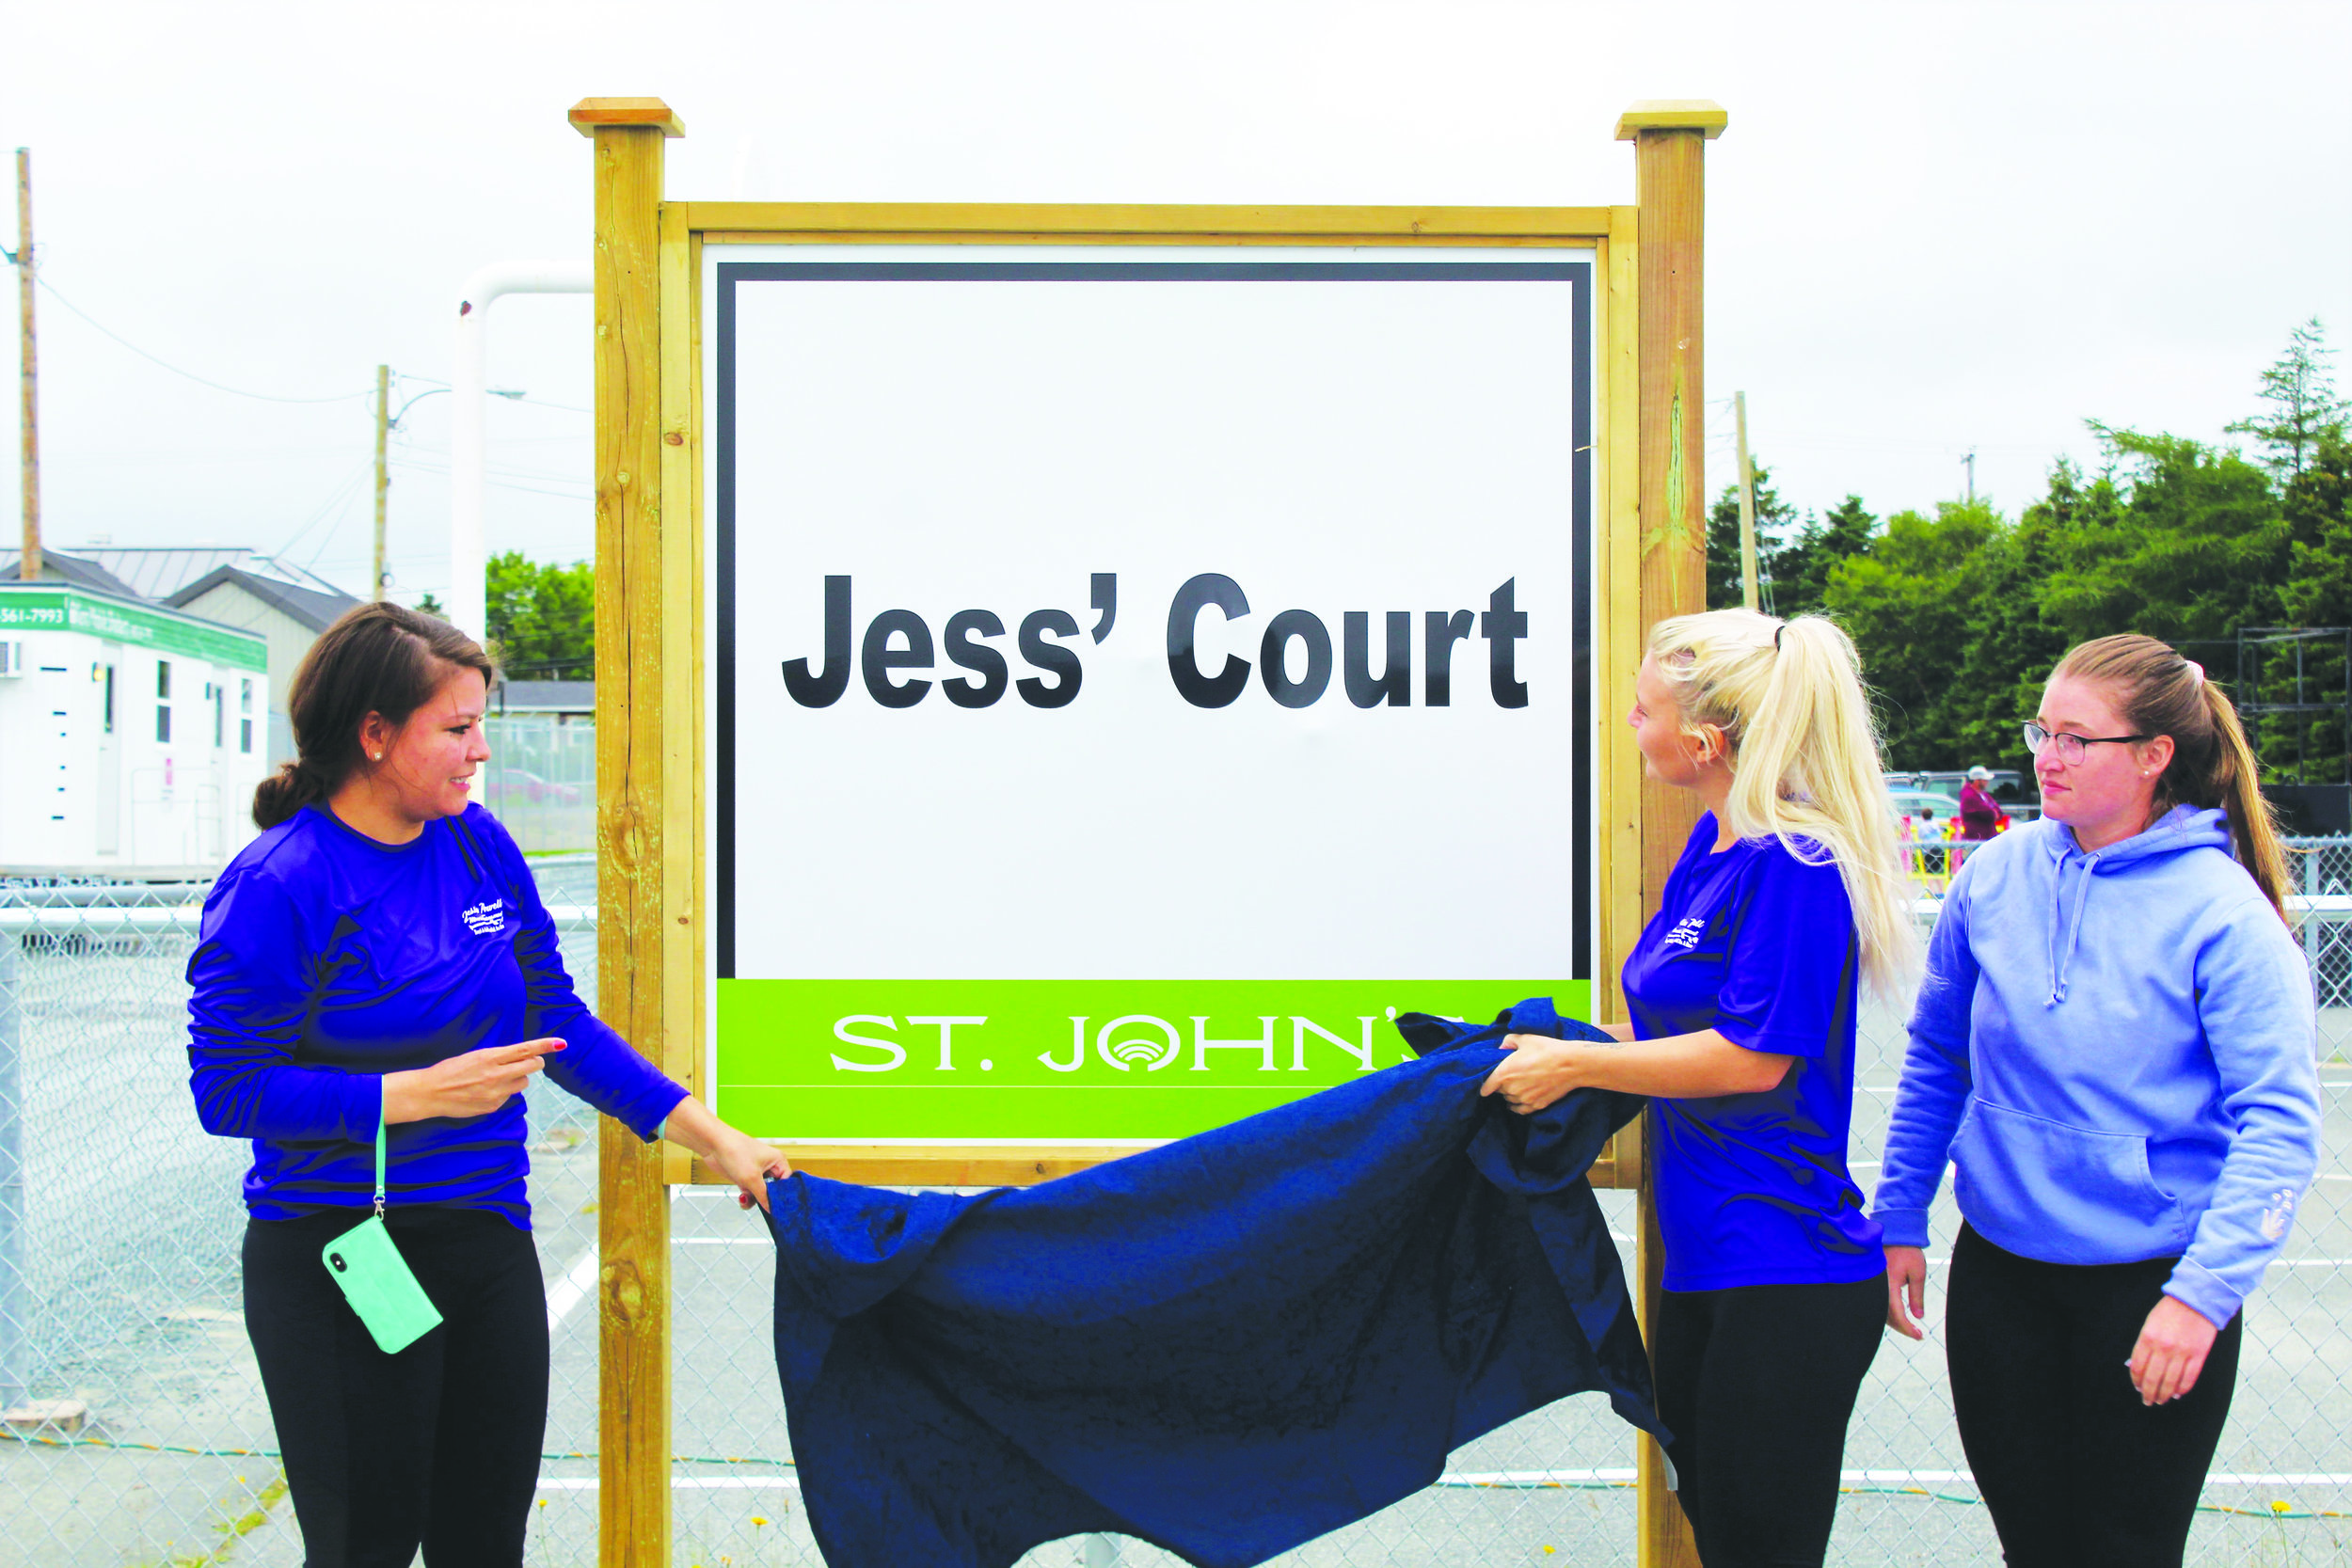 Shania Adams (left), Taylor Hayes (middle), and Rebecca Maher reveal the new sign during the official naming ceremony of Jess' Court. Chris Lewis photo